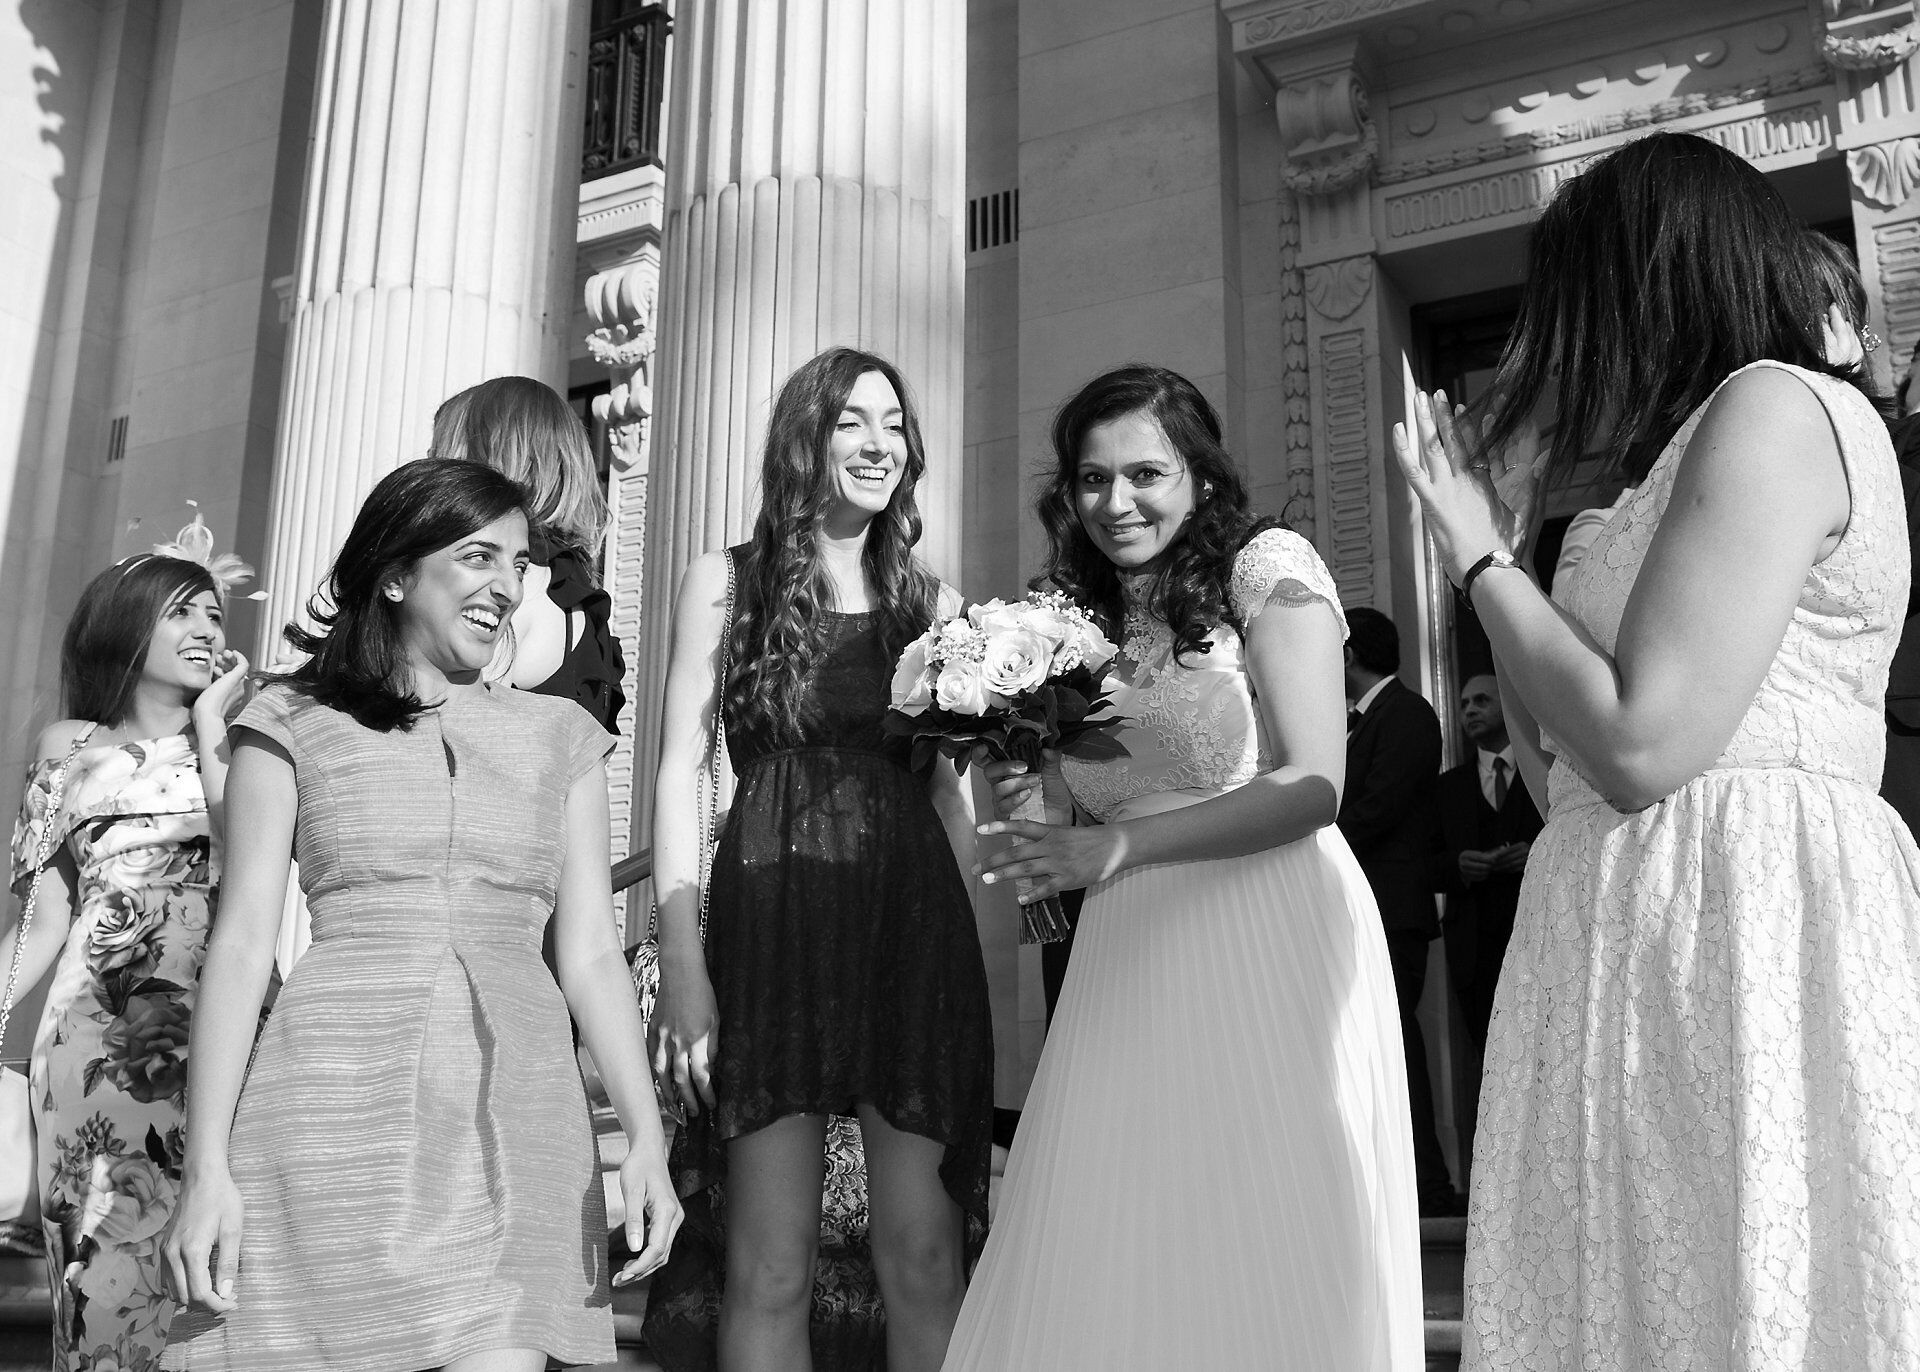 bridesmaid catches bouquet thrown on steps outside old marylebone town hall